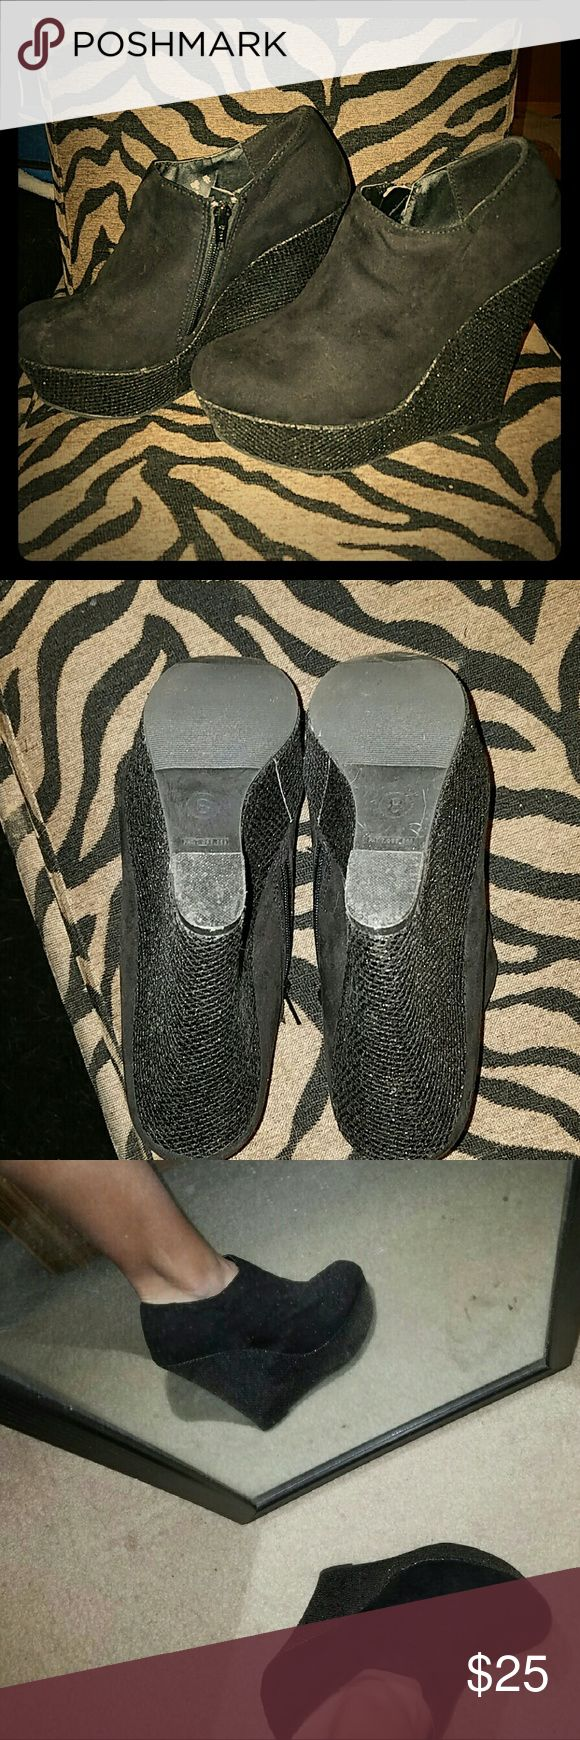 Super Sexy Sparkle Wedge Booties Platform is about 1in and half, wedge almost 4 inches, black suede booties with black sparkle wedge. Worn 2. Light storage wear, but with use would go right back. Minimal wear signs.  Good condition. States size 8. I wear 8 and half shoes size and they fit me good/light snug. No name brand, bought from chic  fashion Boutique in new york. Shoes Ankle Boots & Booties